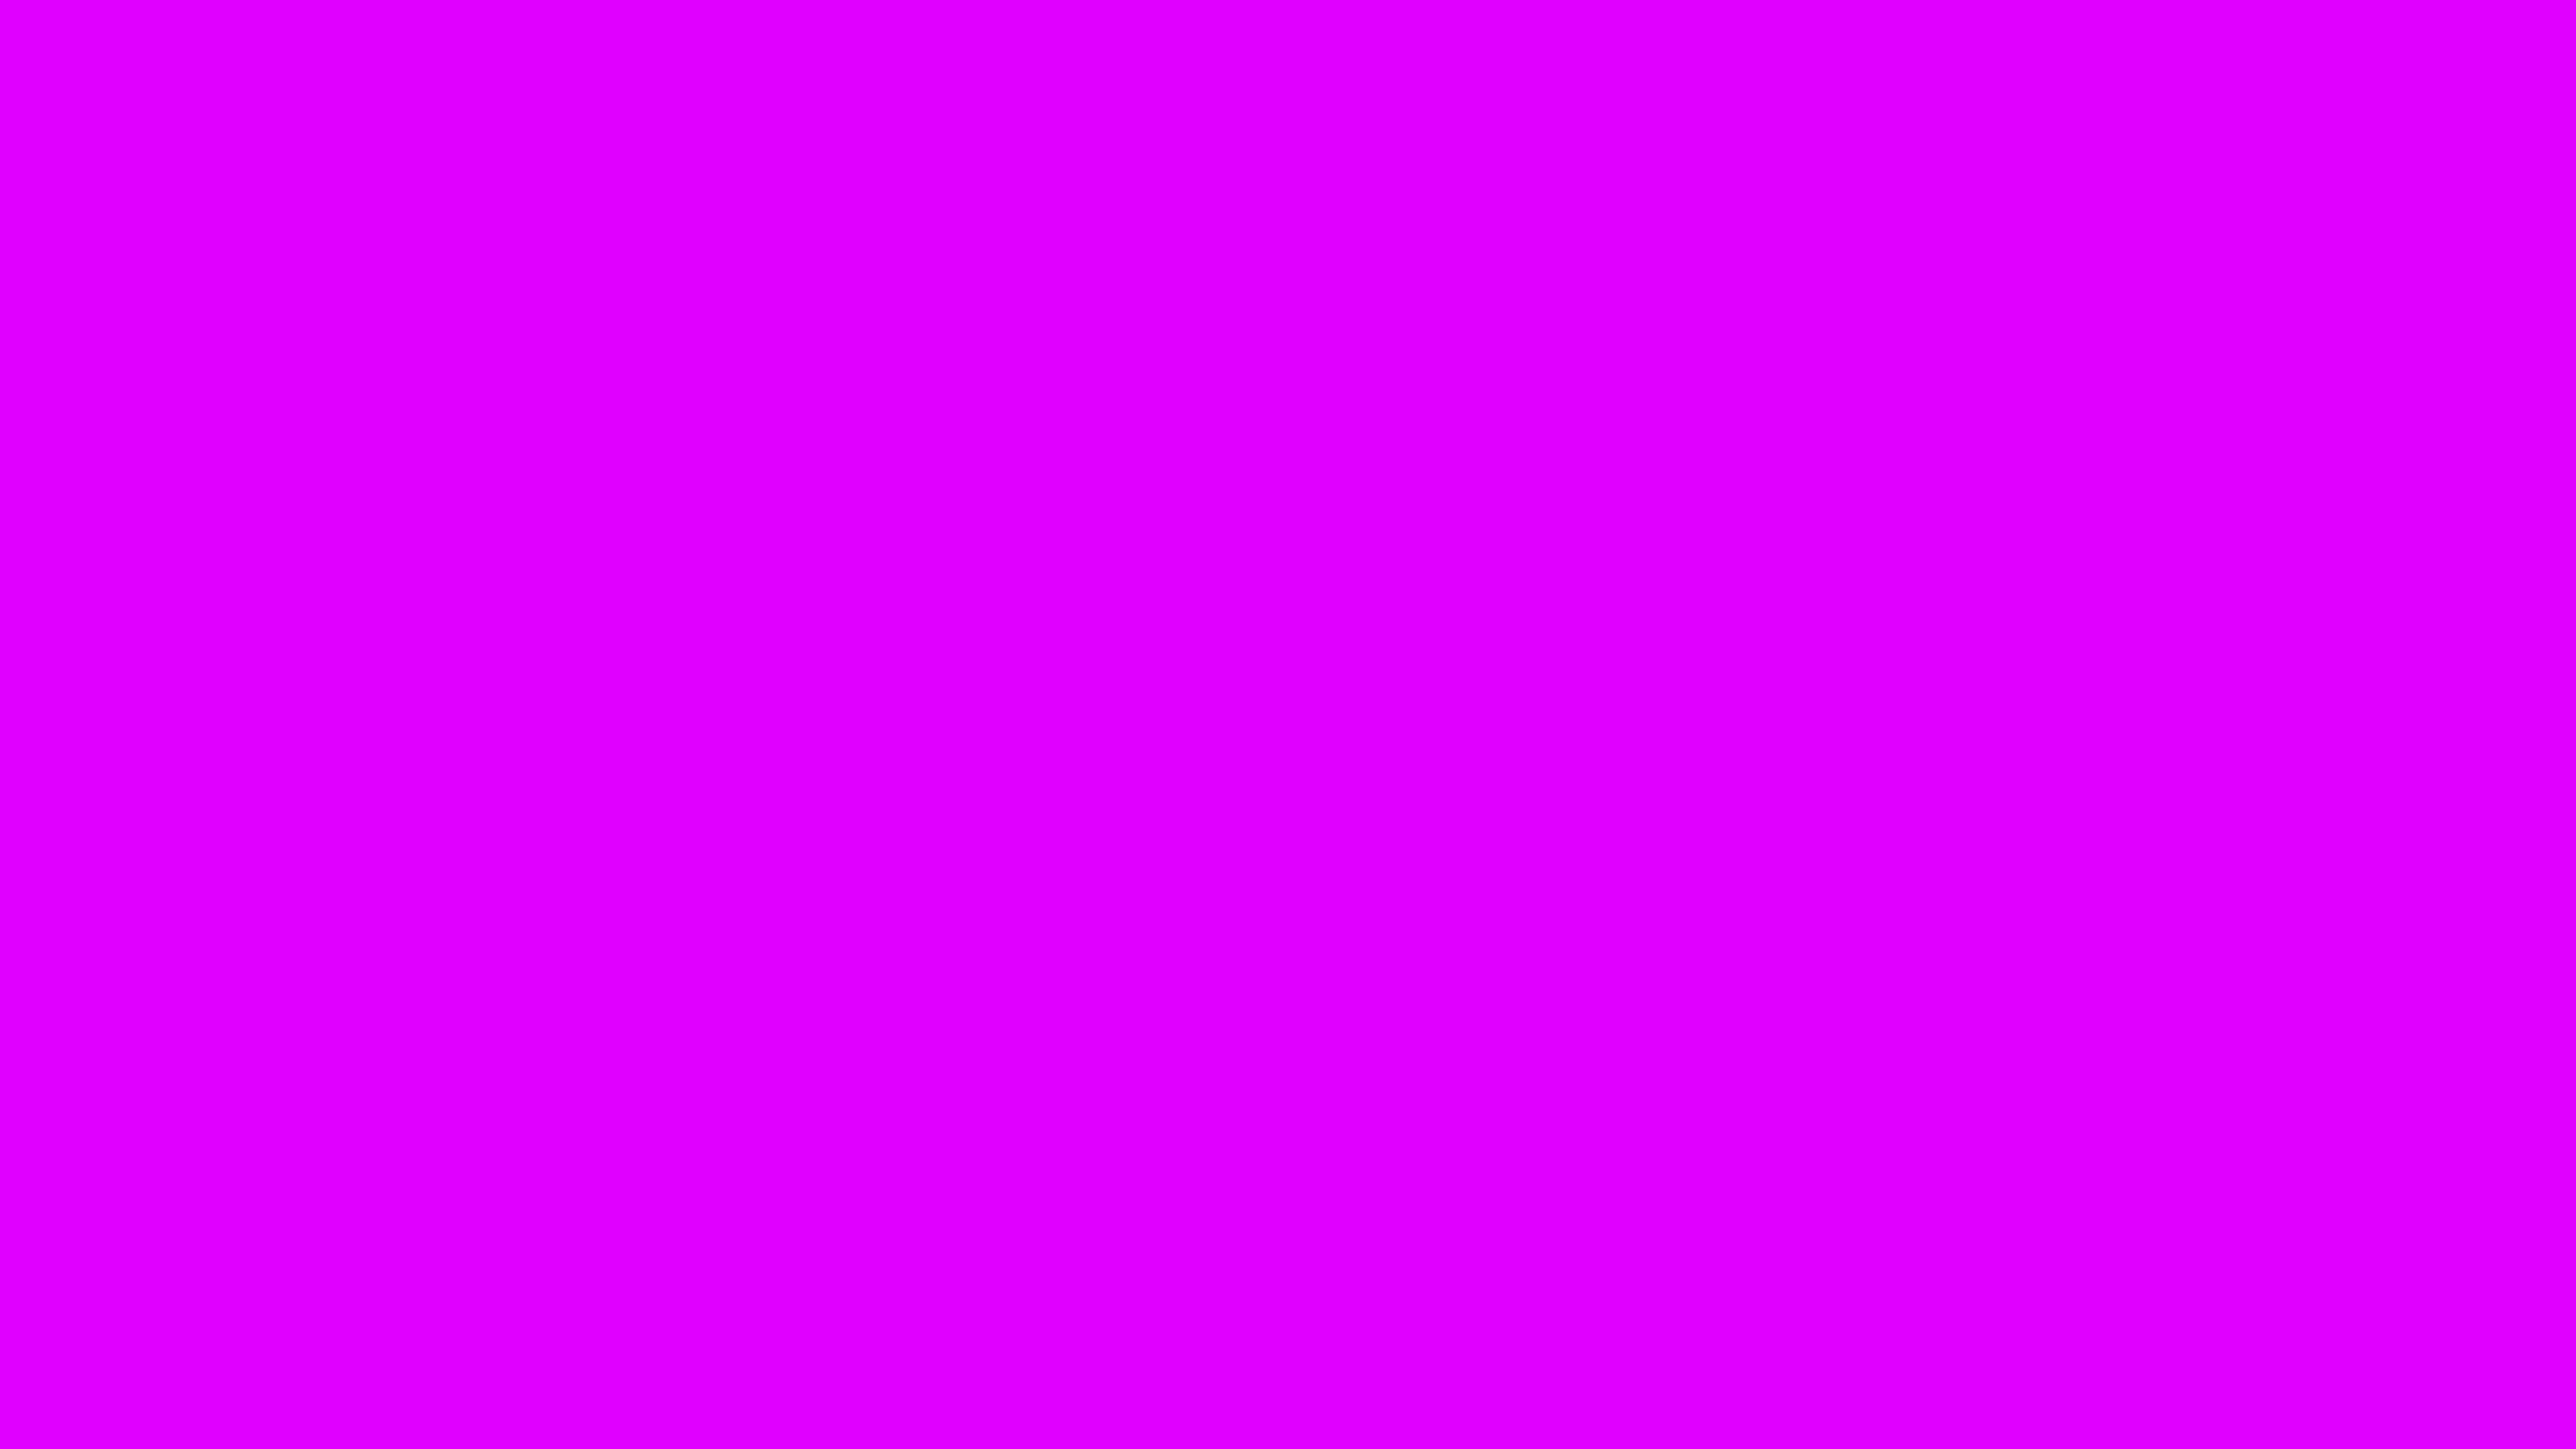 5120x2880 Phlox Solid Color Background